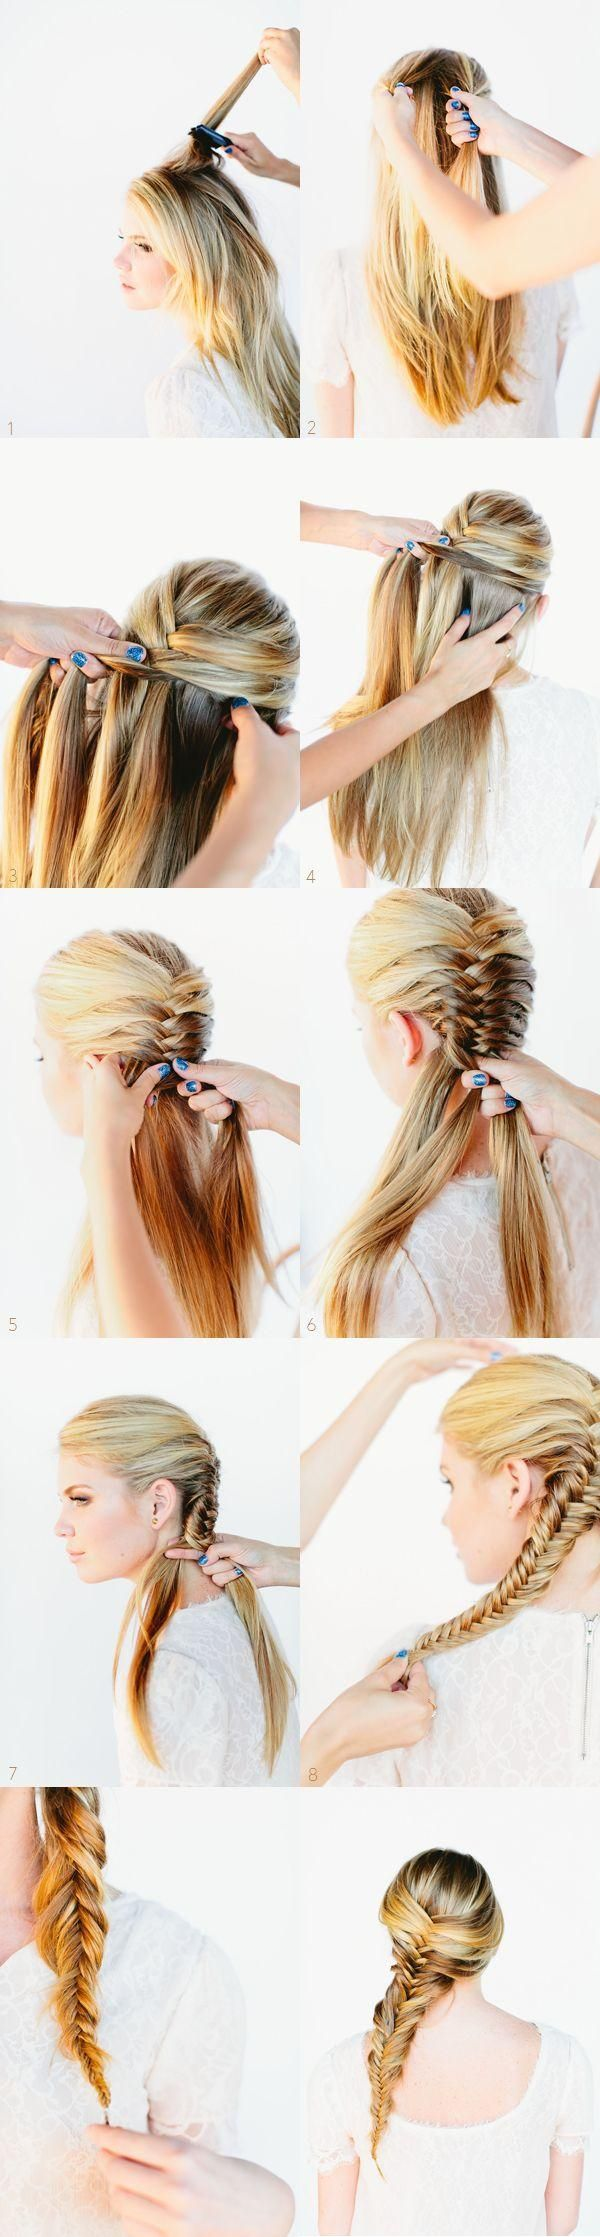 658 best Half Up Half Down Hair images on Pinterest | Hairstyle ...